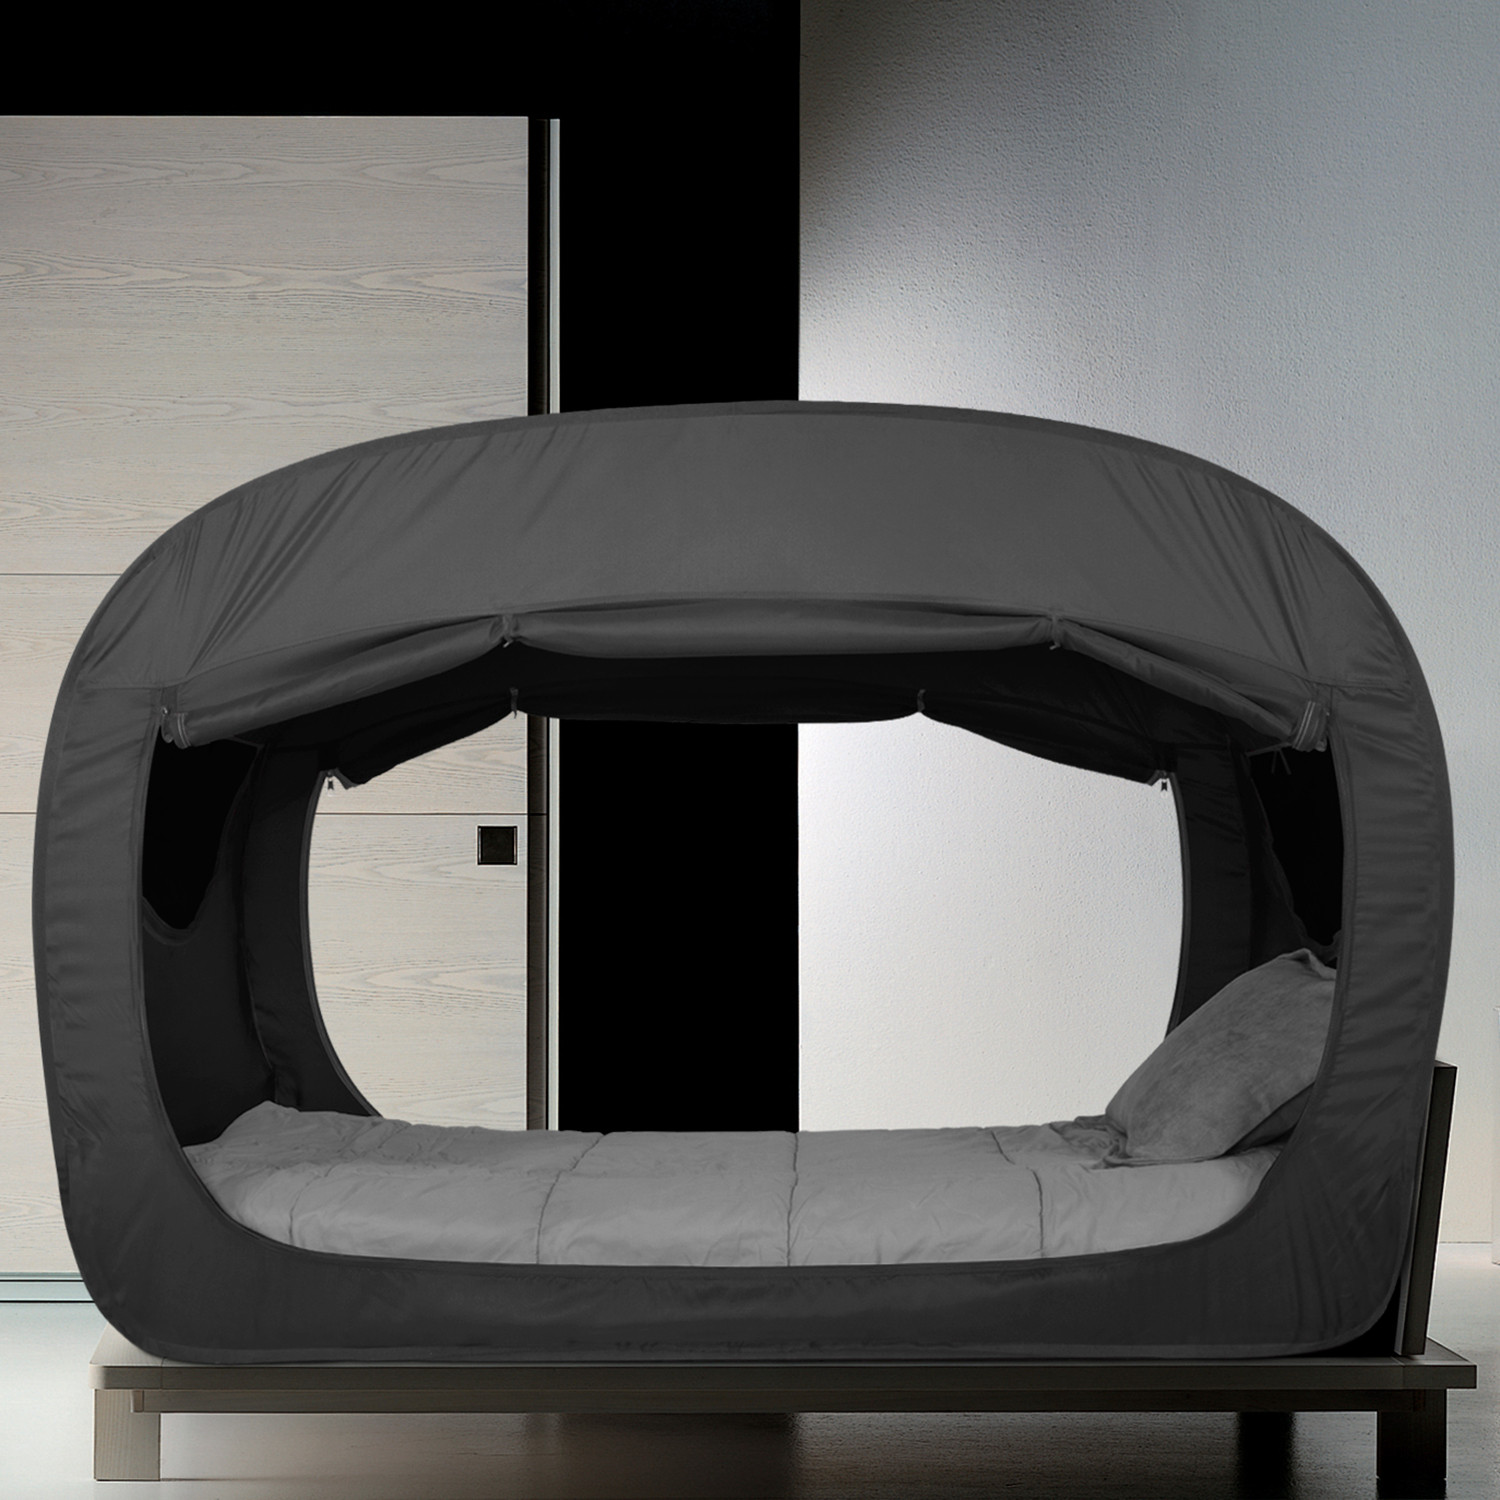 & Privacy Pop: This Bed Tent is a Dark Comforting Fort for All Ages